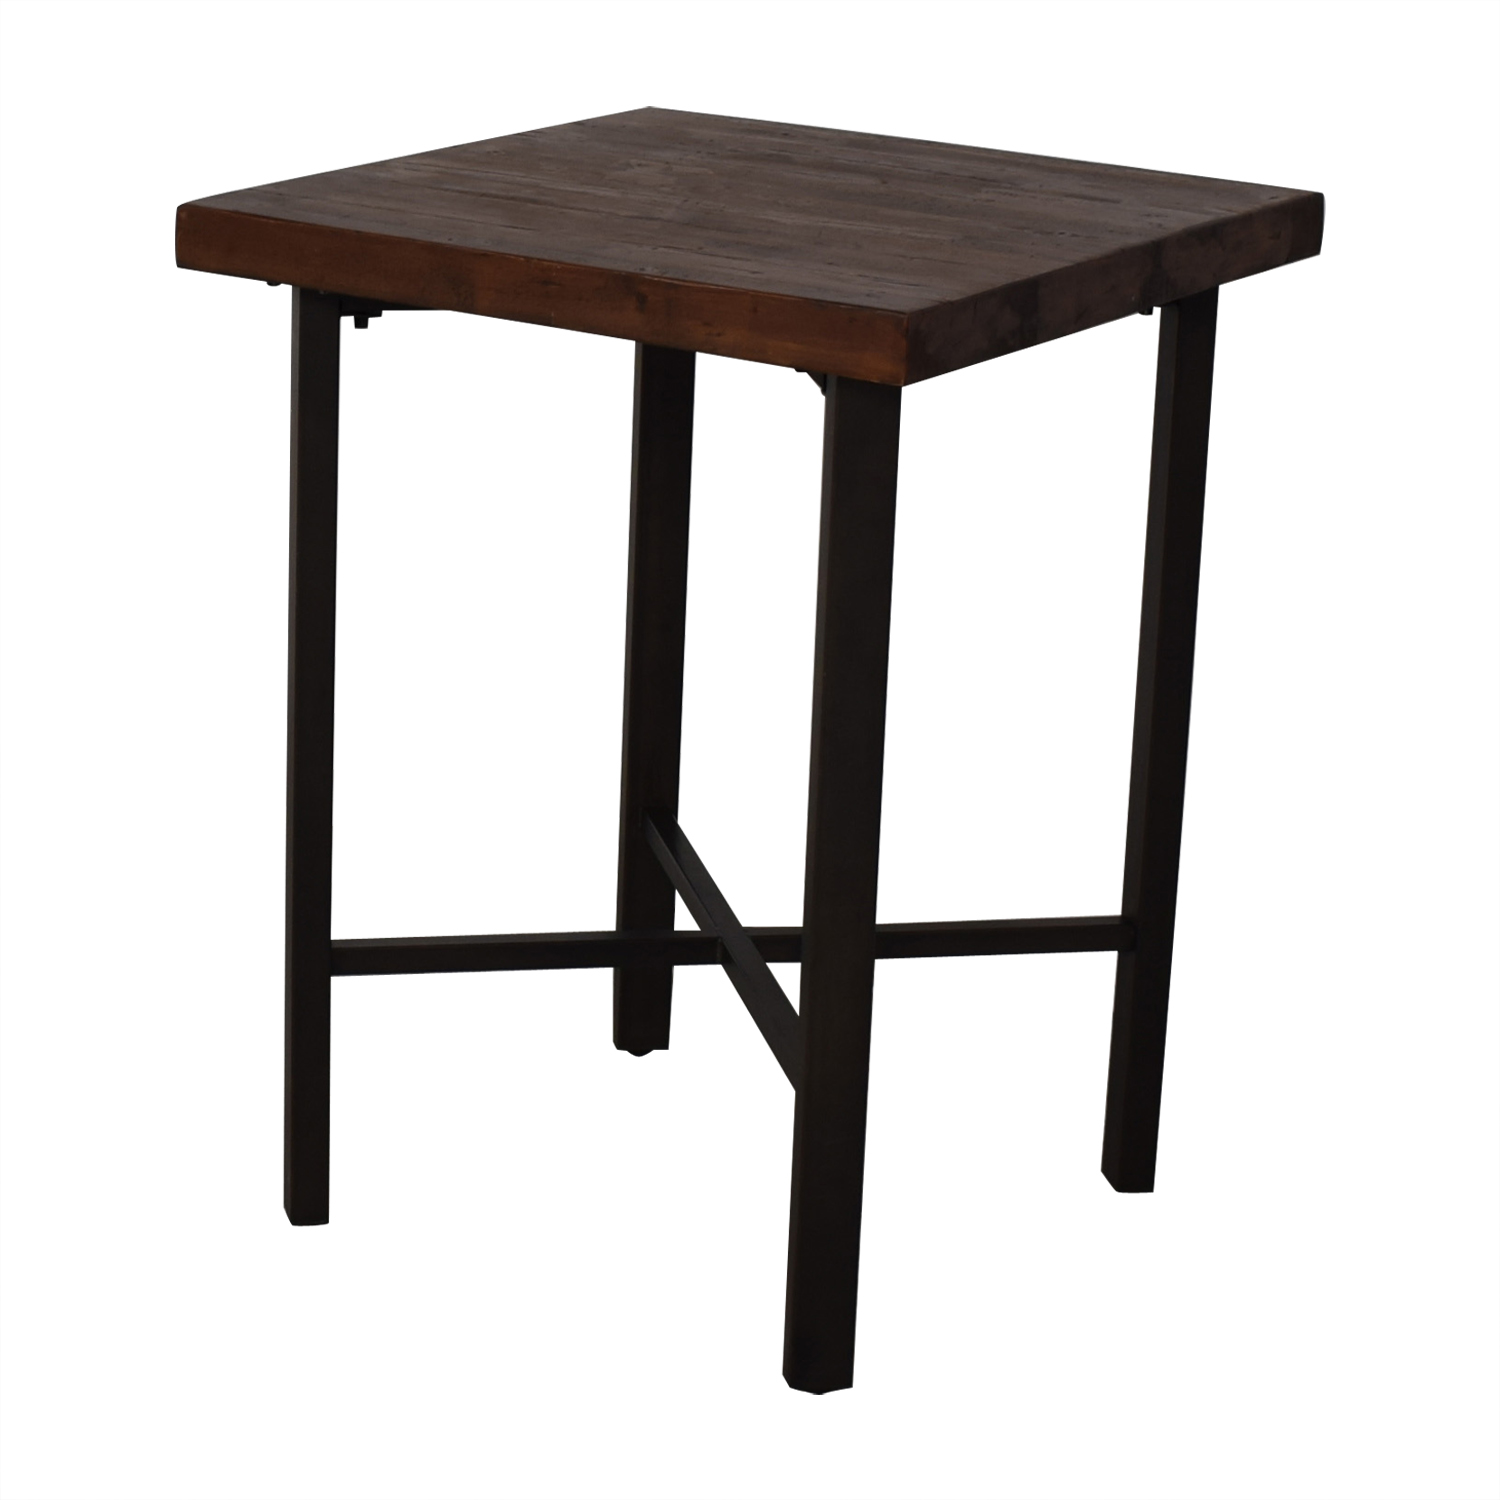 73% OFF - Pottery Barn Pottery Barn Griffin Reclaimed Wood ...